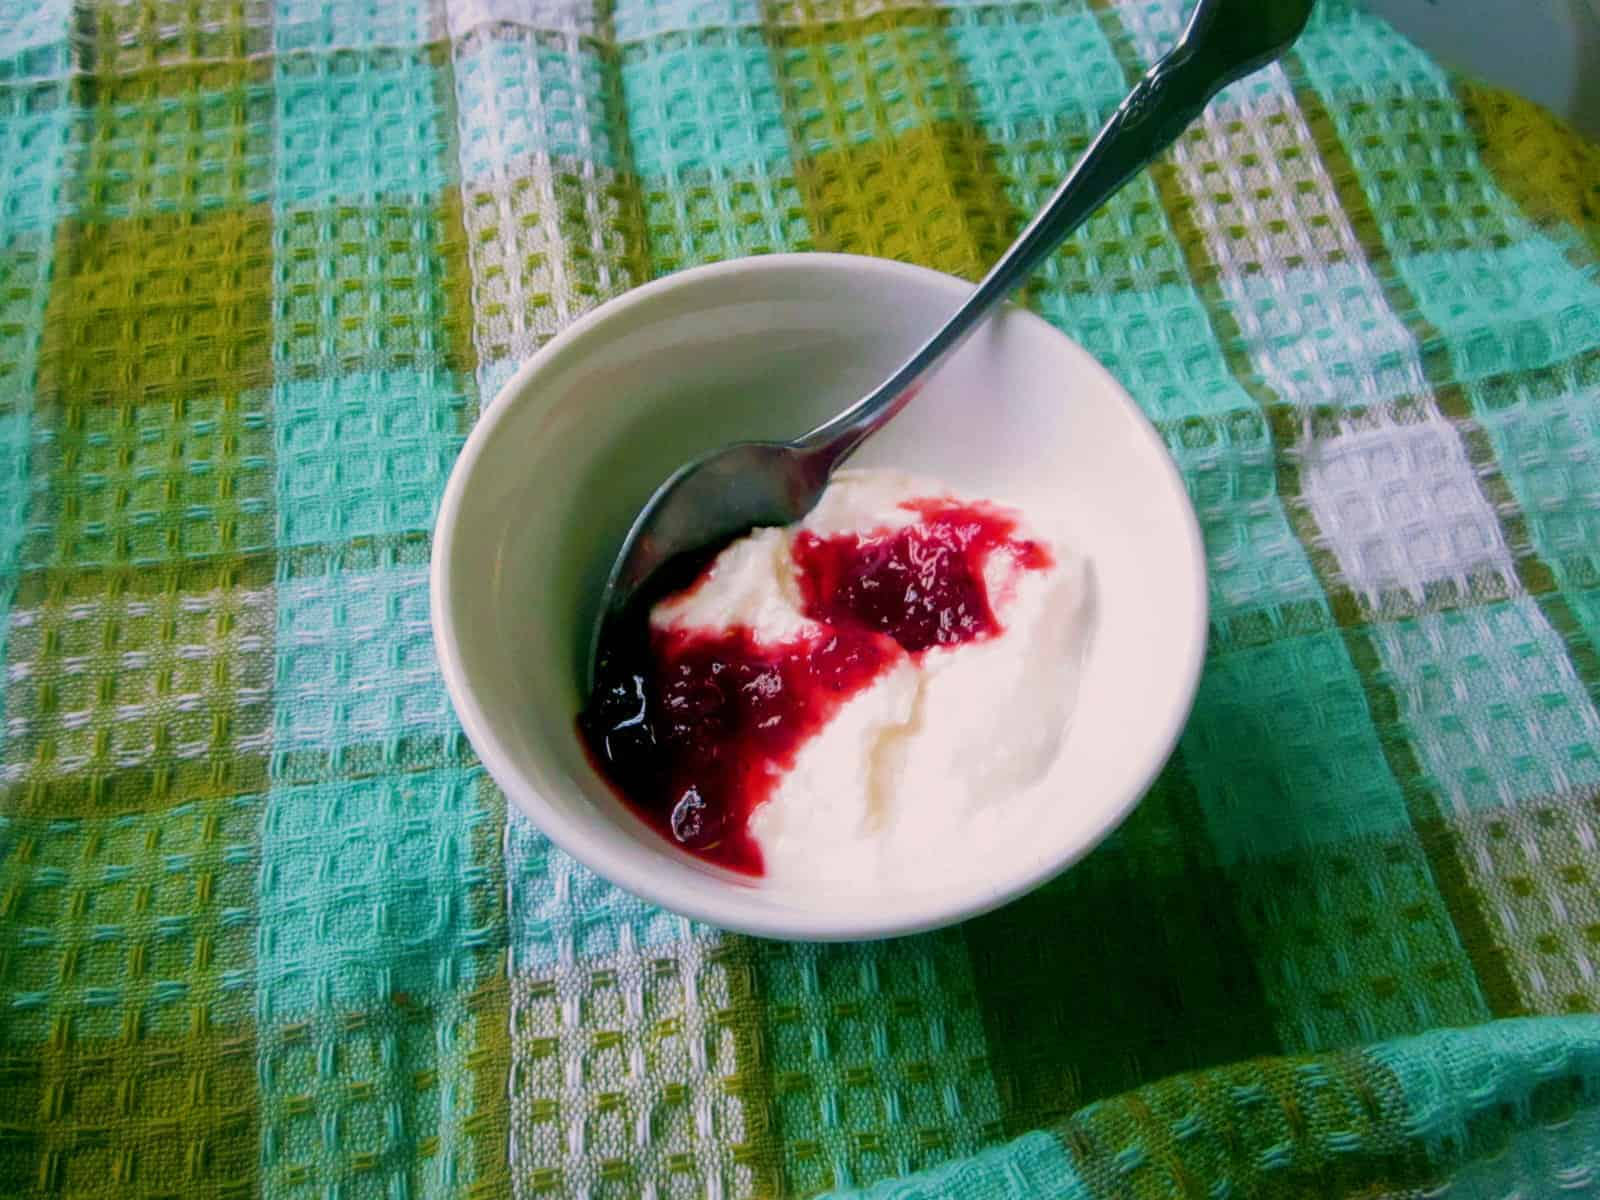 lactose-free yogurt and jam